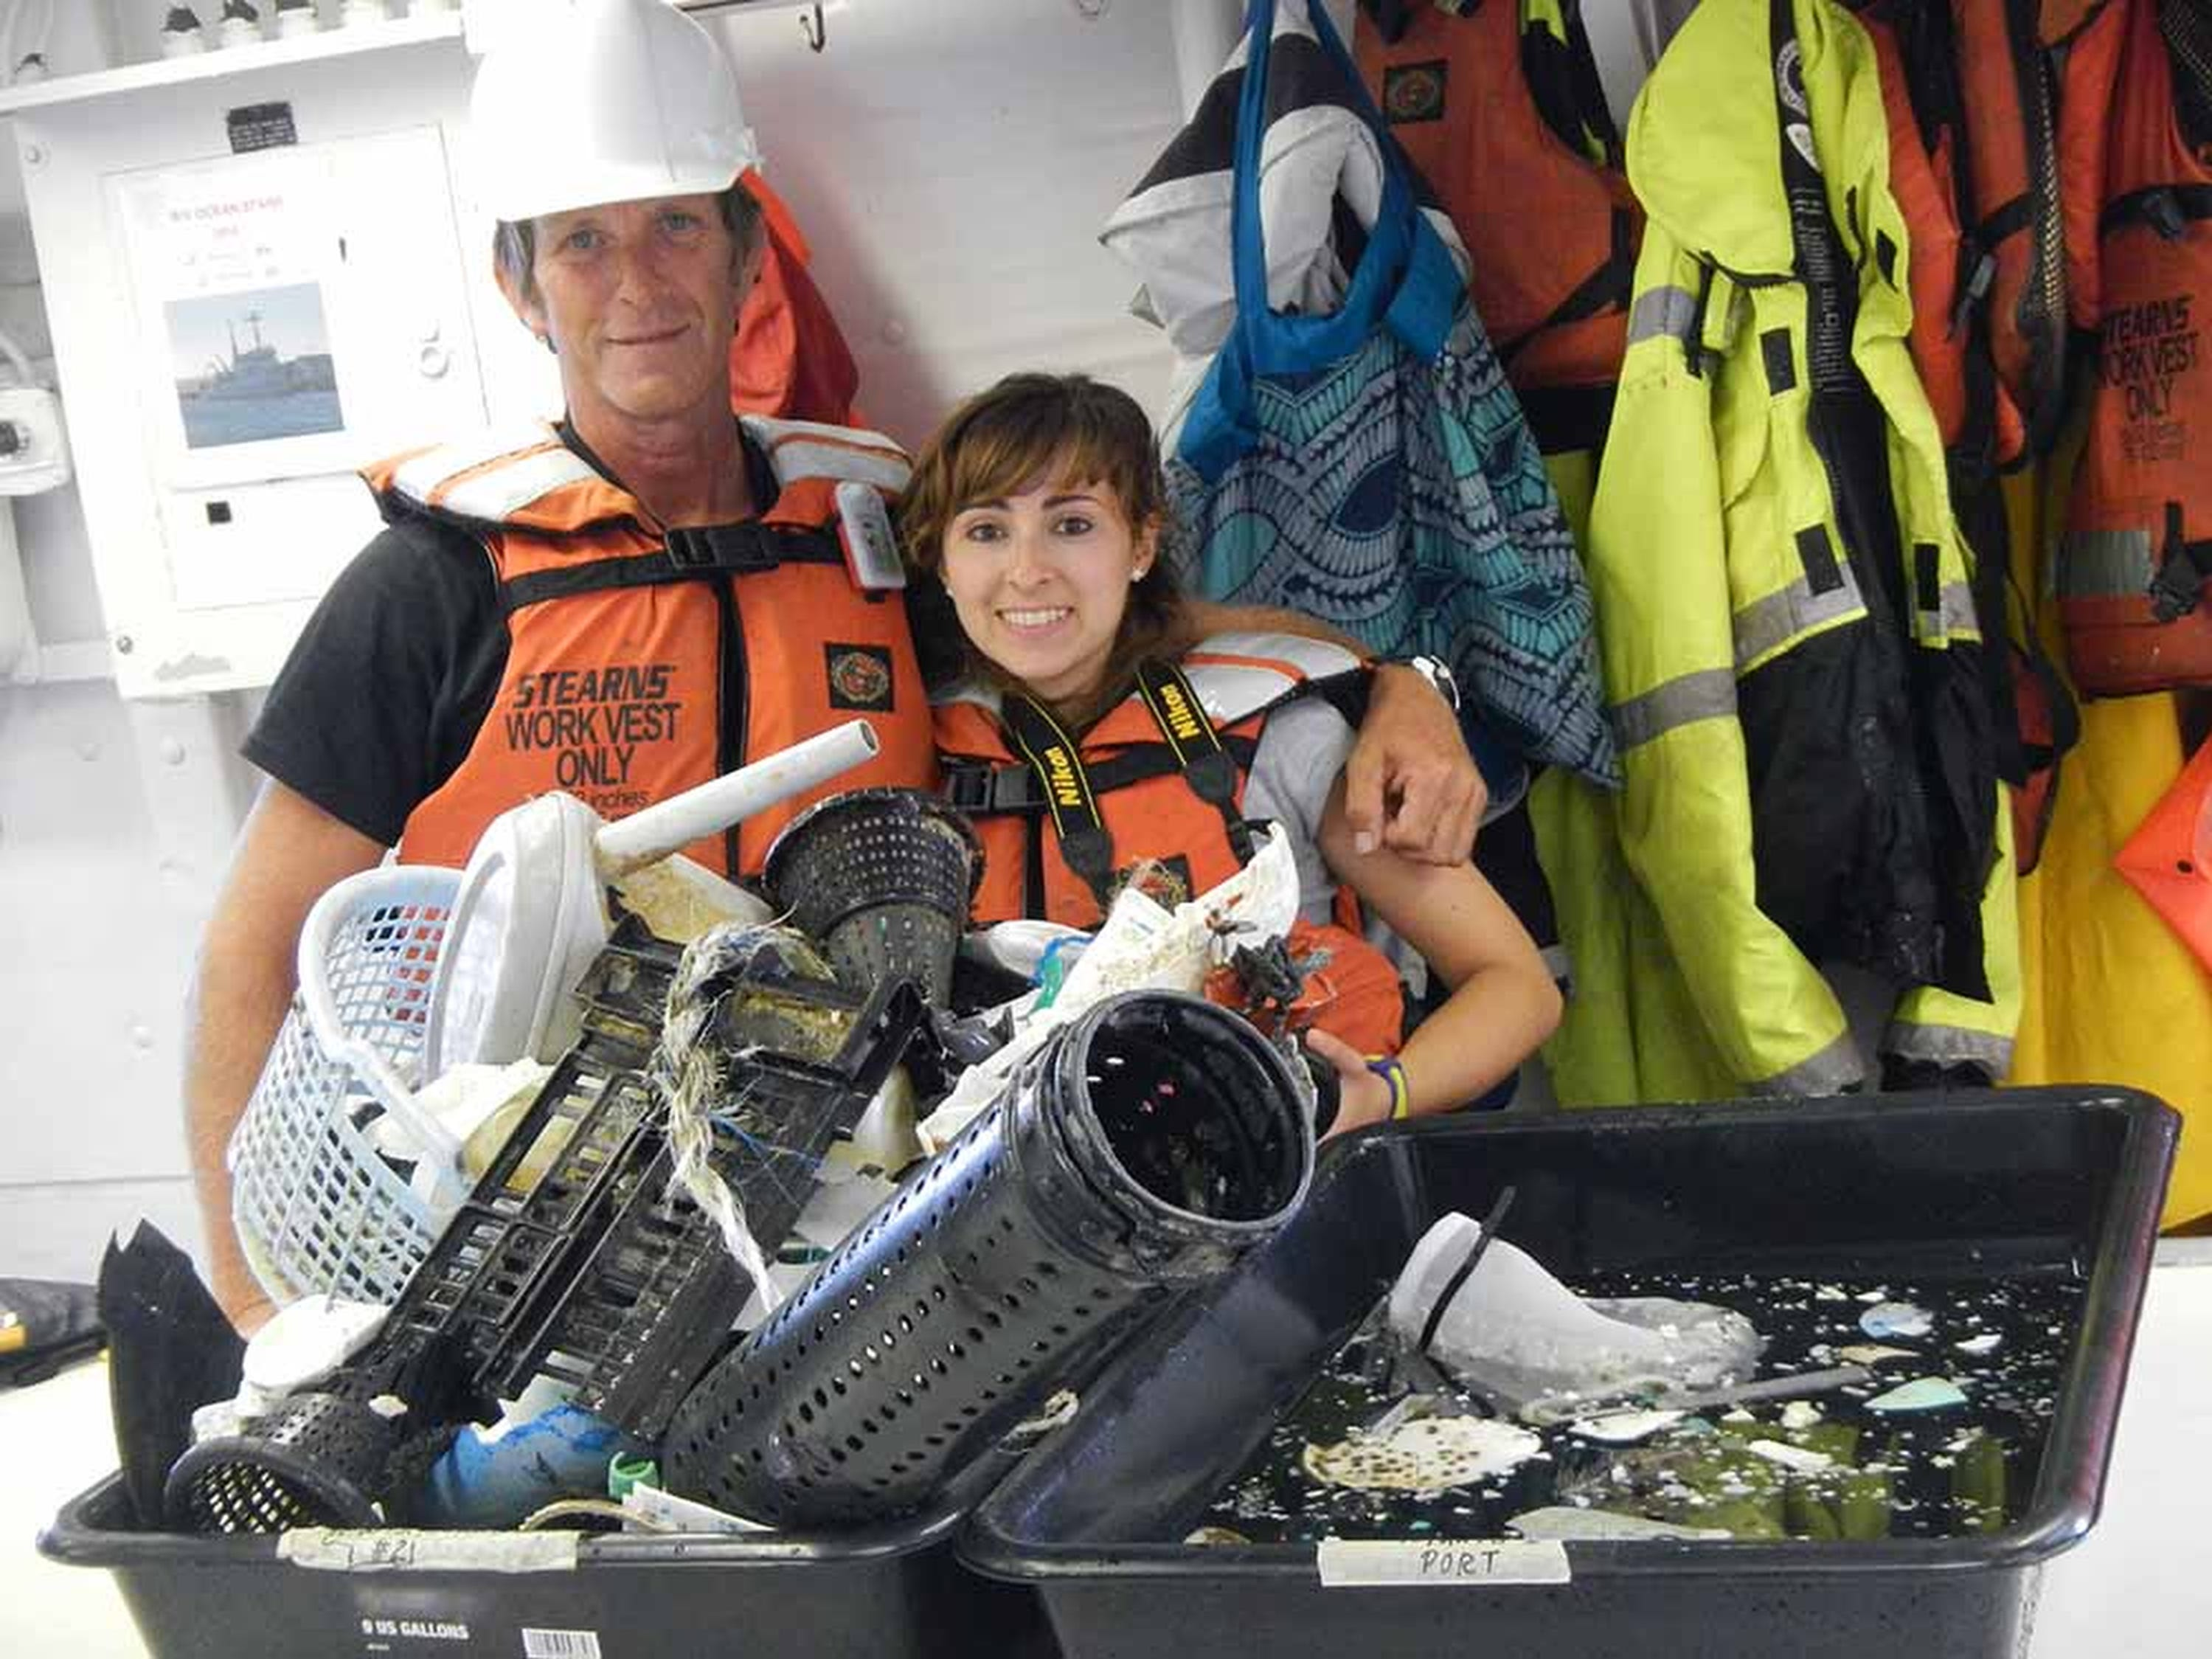 Mega Expedition crew members Mario Merkus and Serena Cunsolo on the R/V Ocean Starr show the results of trawling with one 6 meter-wide net for one hour in the Great Pacific Garbage Patch in 2015. Scientists and volunteers spent a month gathering data on how much plastic garbage is floating in the Pacific Ocean. They say most of the trash is medium to large-sized pieces, as opposed to tiny ones.